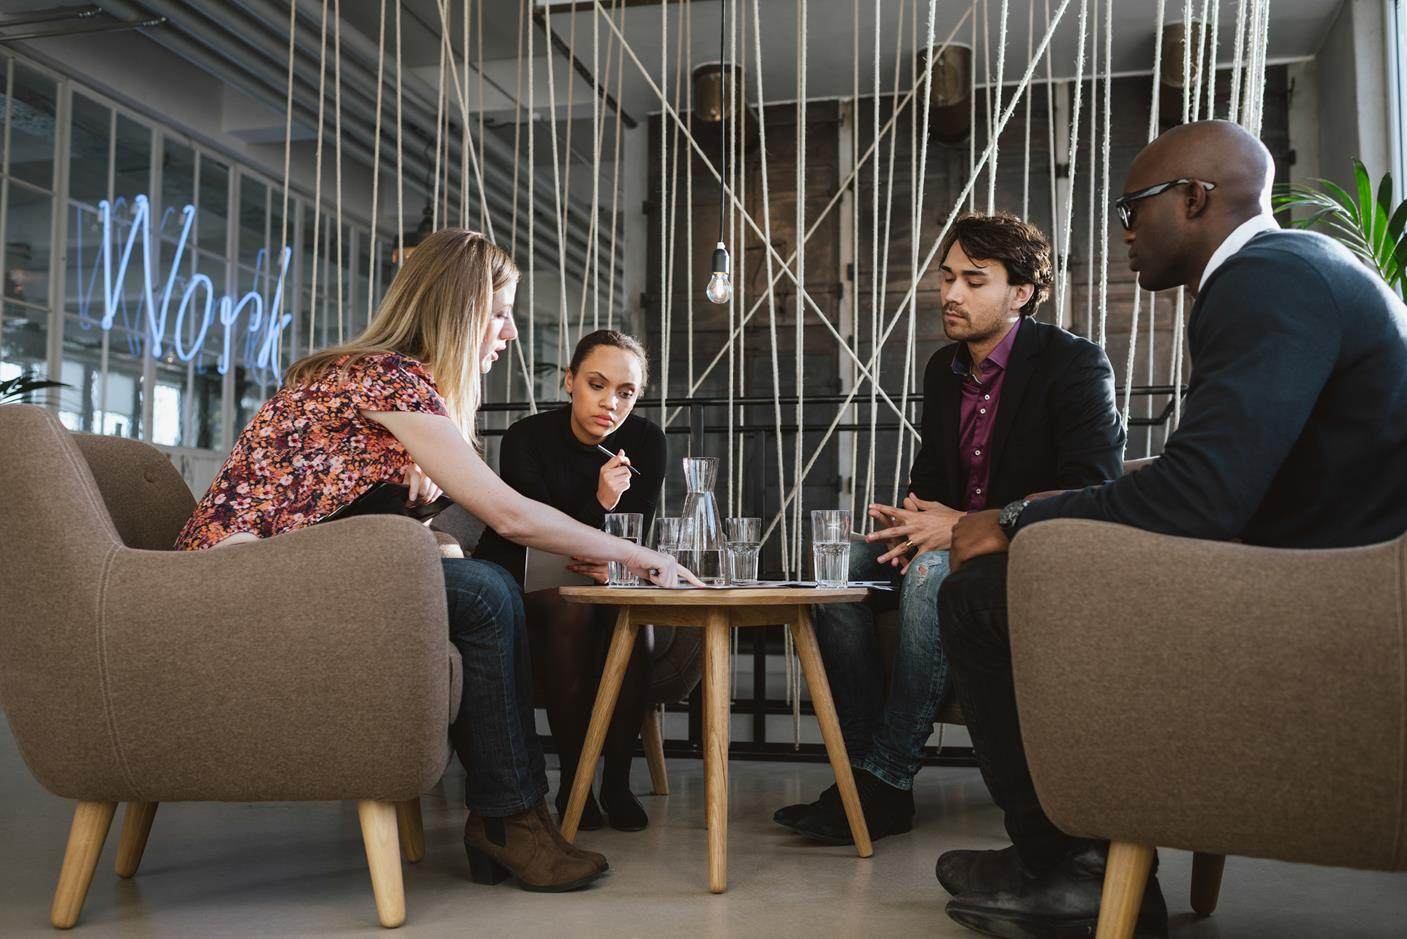 Image of people in a modern work setting collaborating around a table.